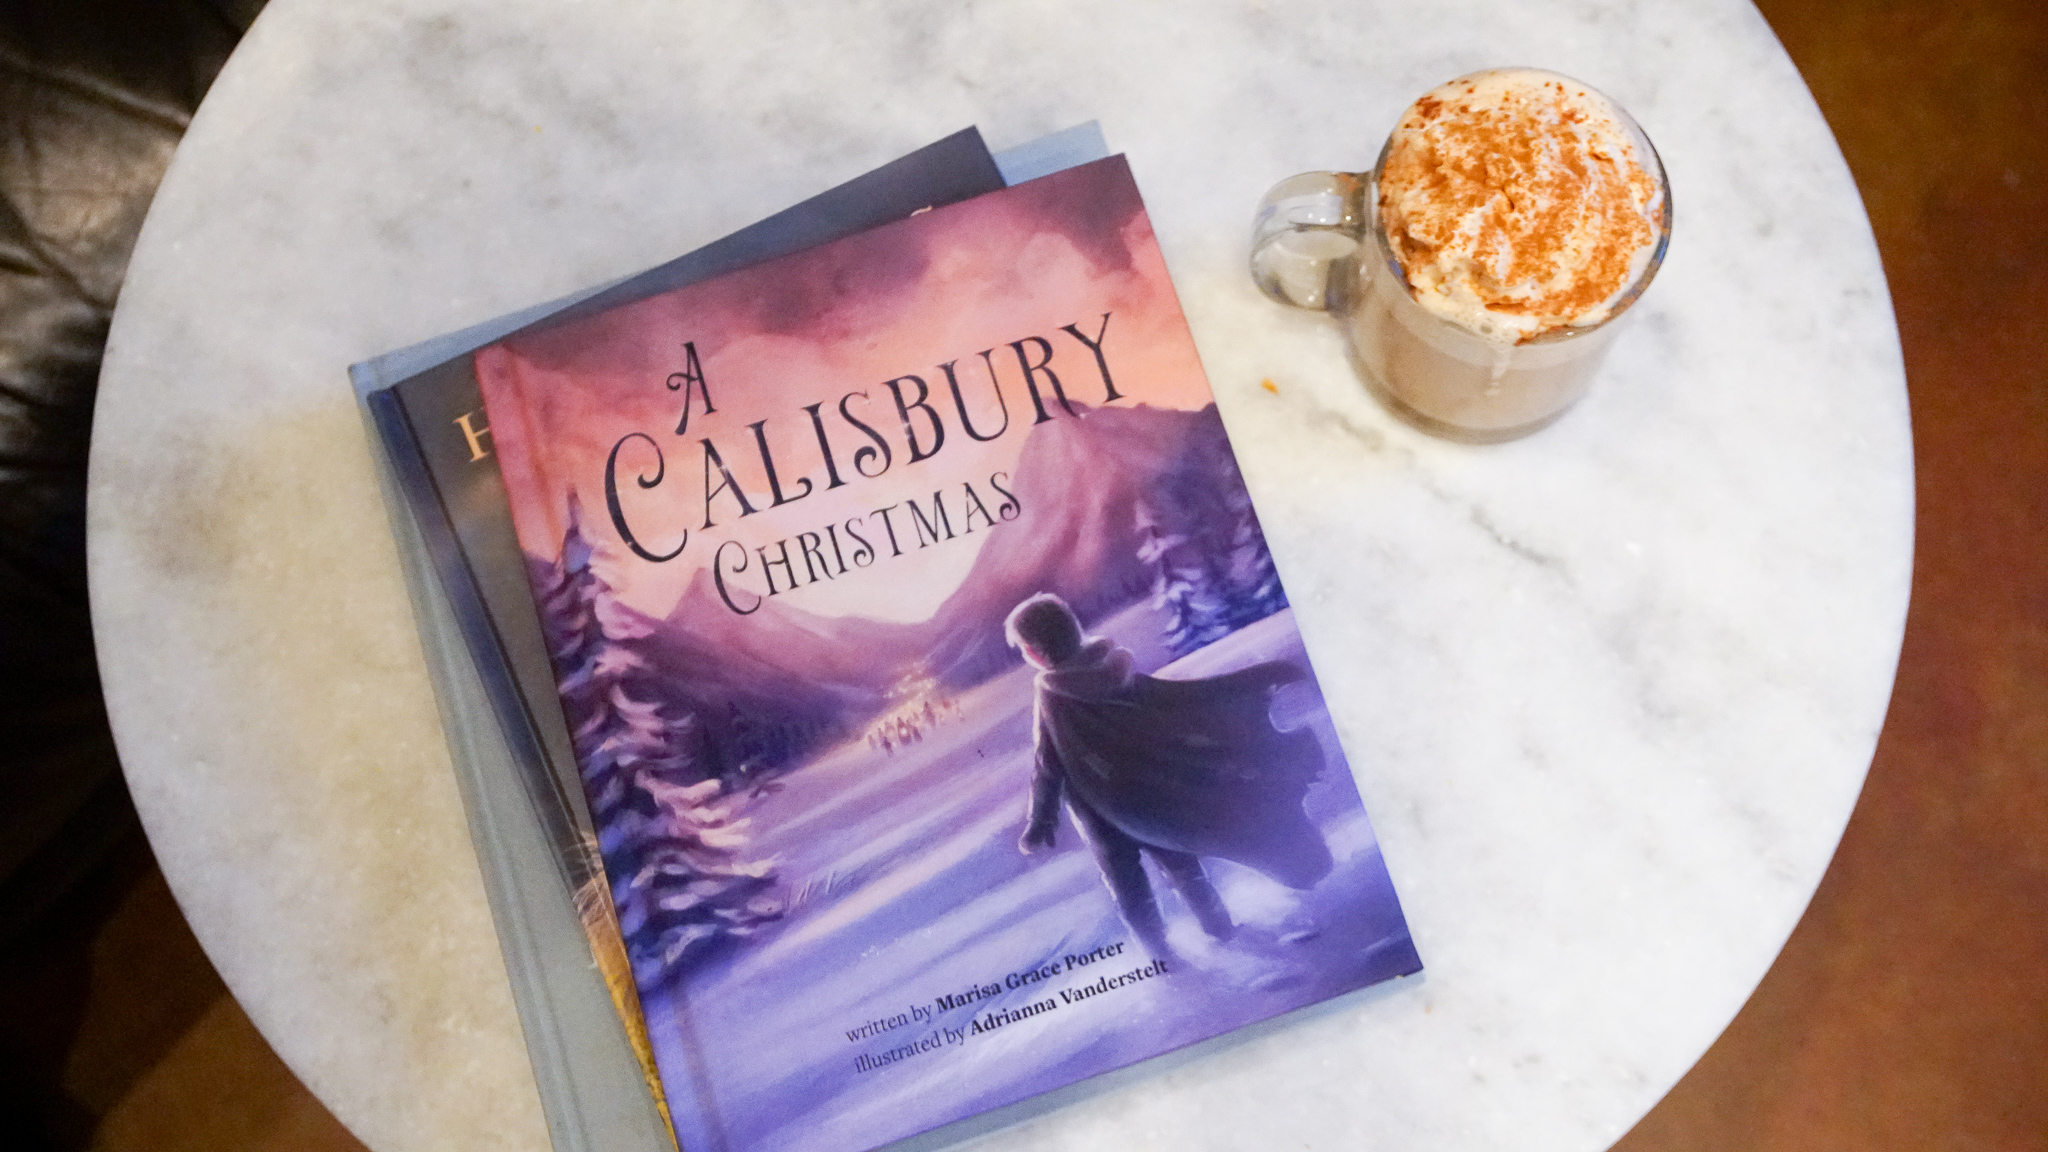 a calisbury christmas by marisa porter and adrianna vanderstelt